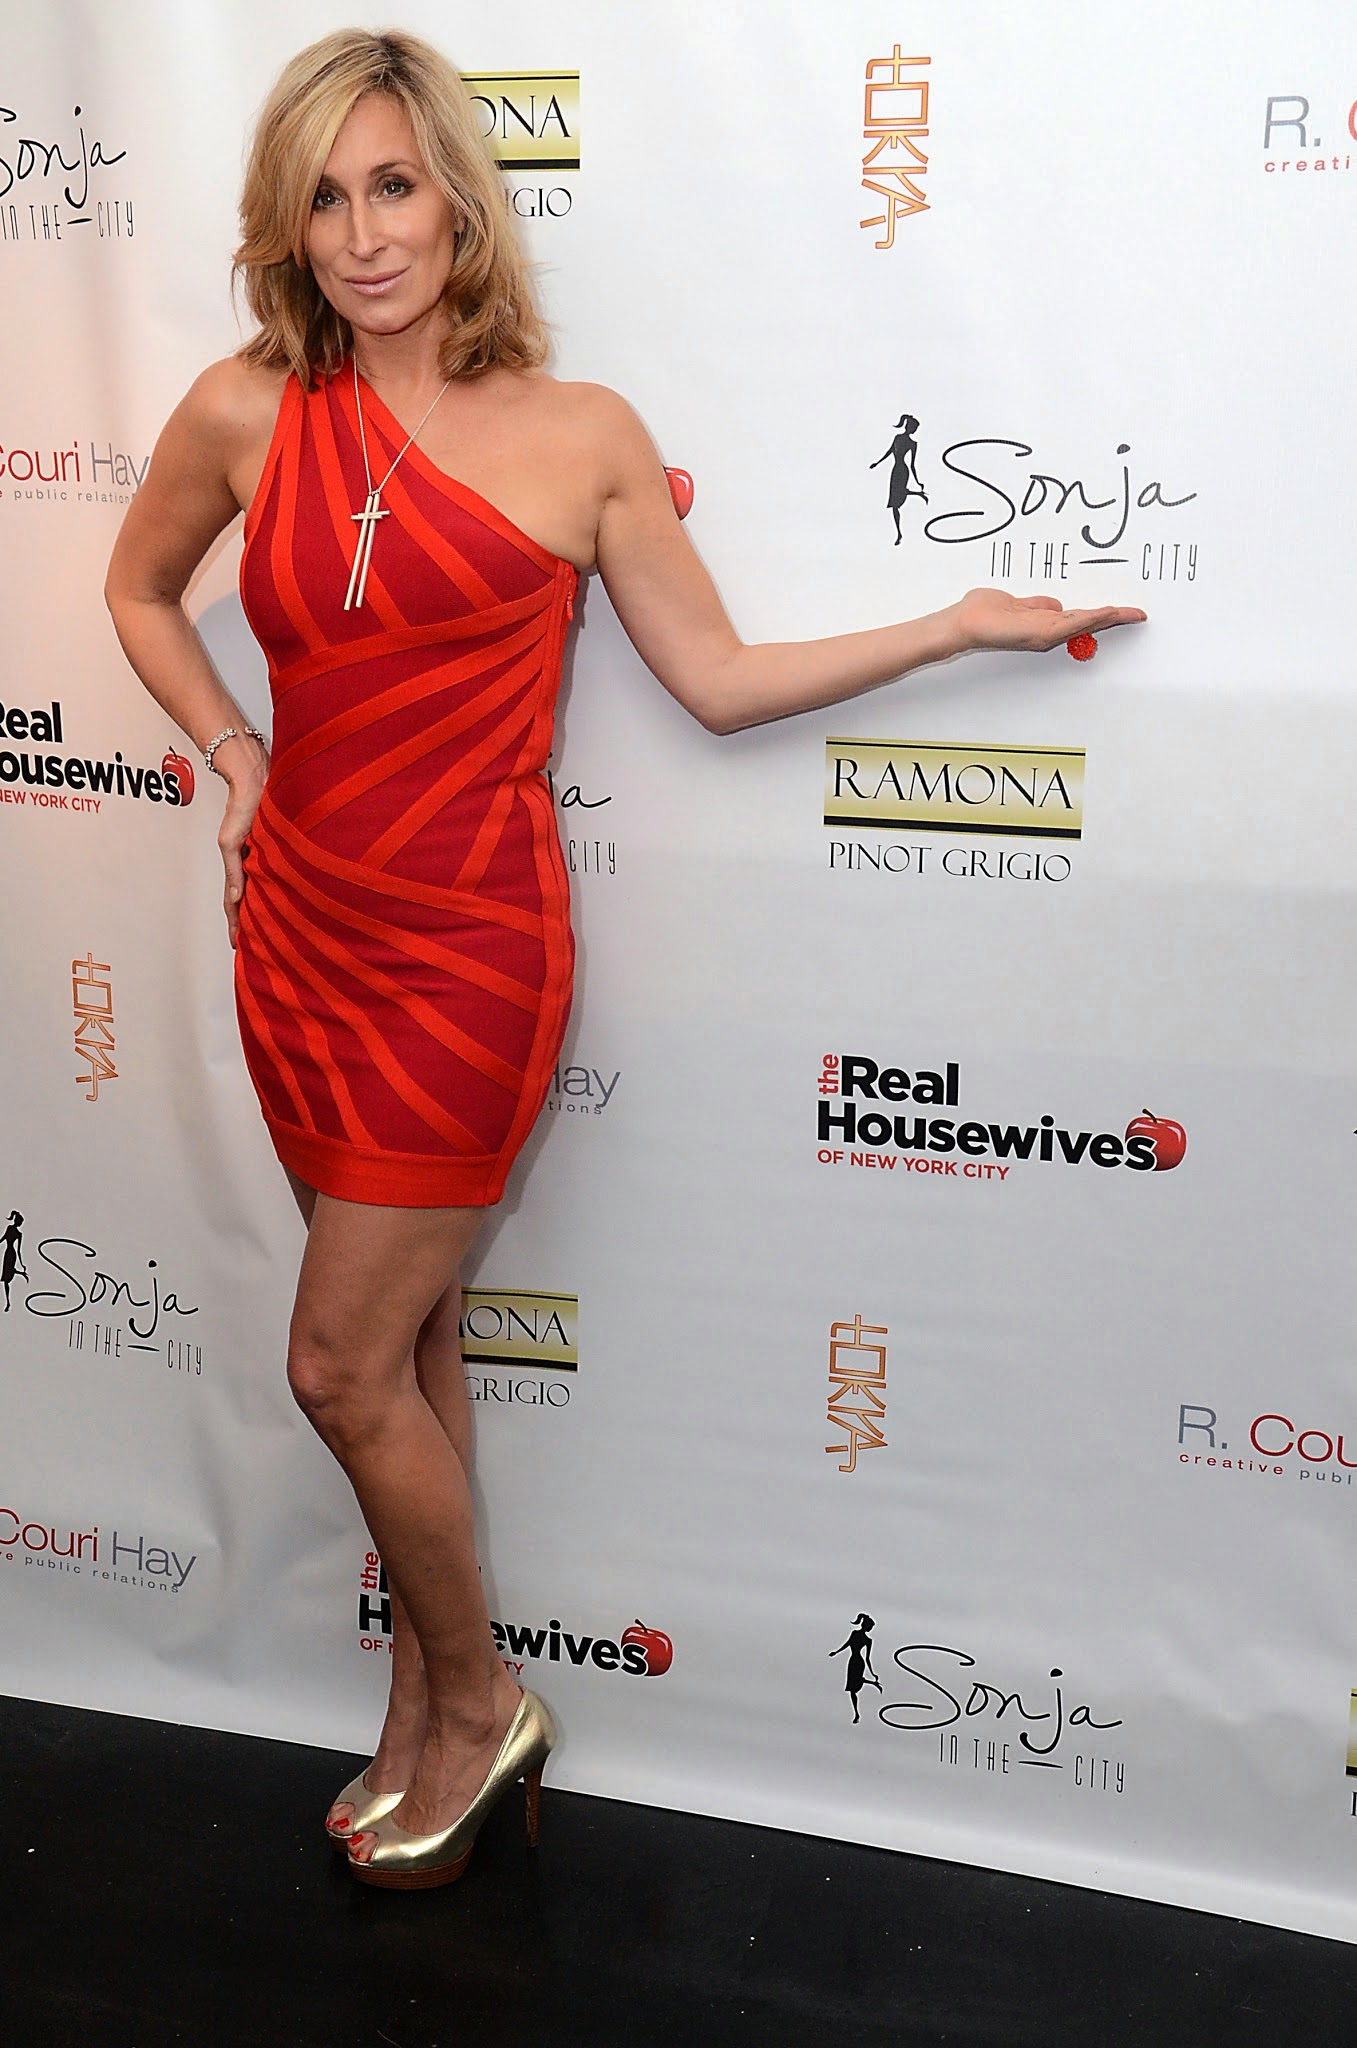 b9cf440855bf Sonja Morgan and Ramona Singer Host The Real Housewives of New York City  Season 6 Premiere Party. Photo Credit: Andrew Werner ...